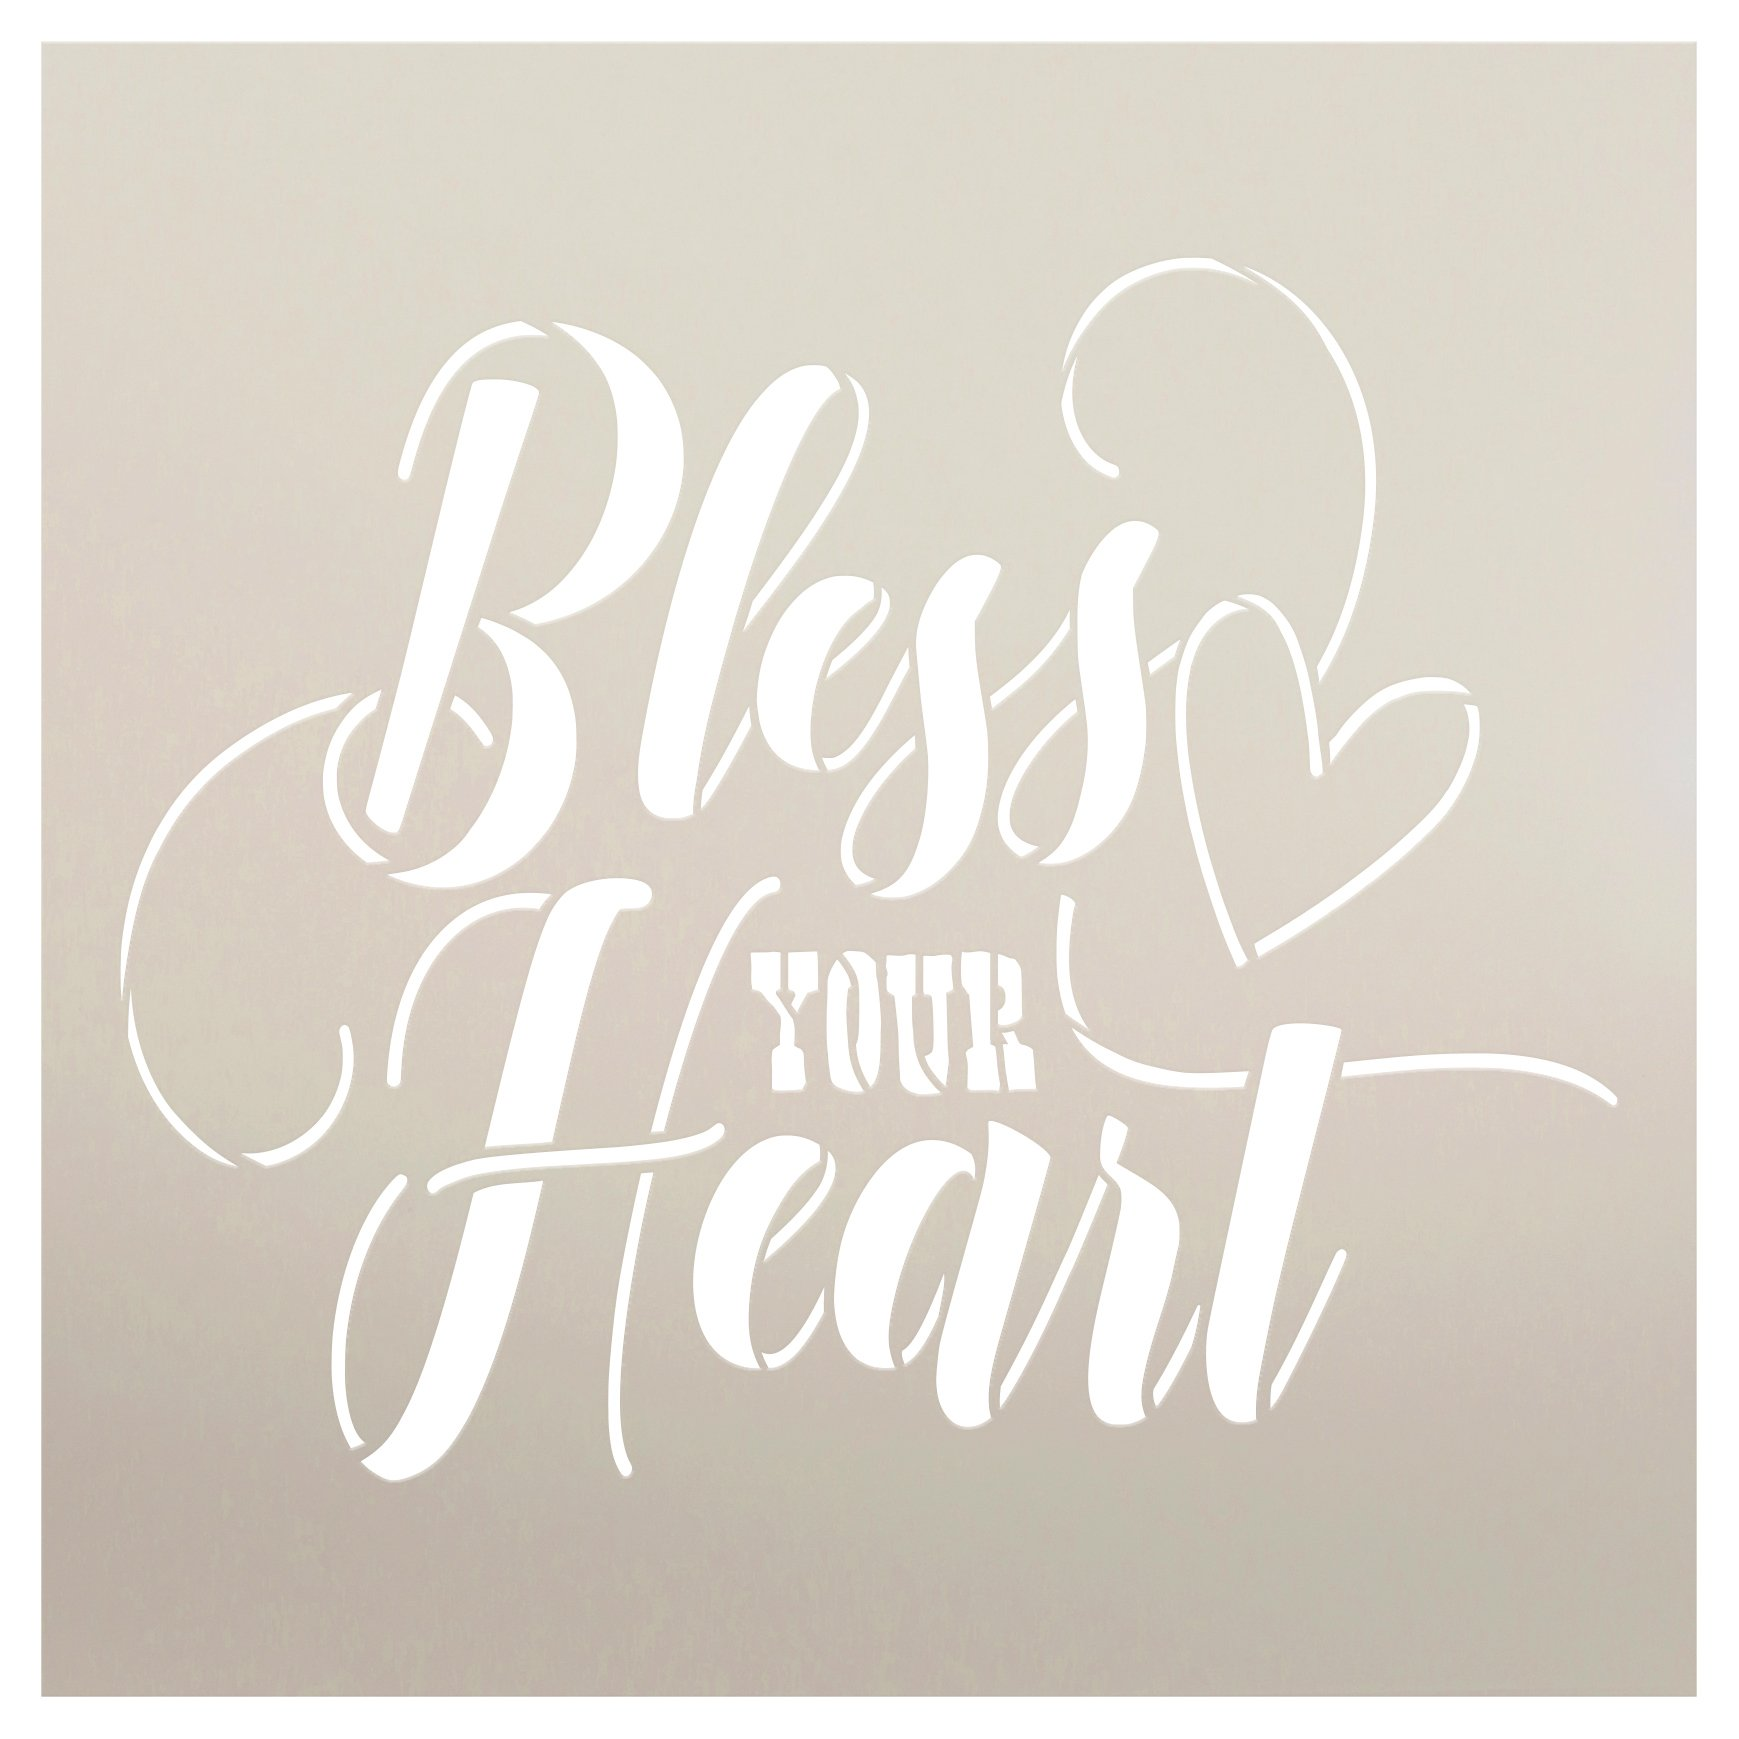 Bless Your Heart Stencil by StudioR12 | DIY Funny Cursive Script Saying Home Decor | Craft & Paint Wood Sign | Reusable Mylar Template | Select Size